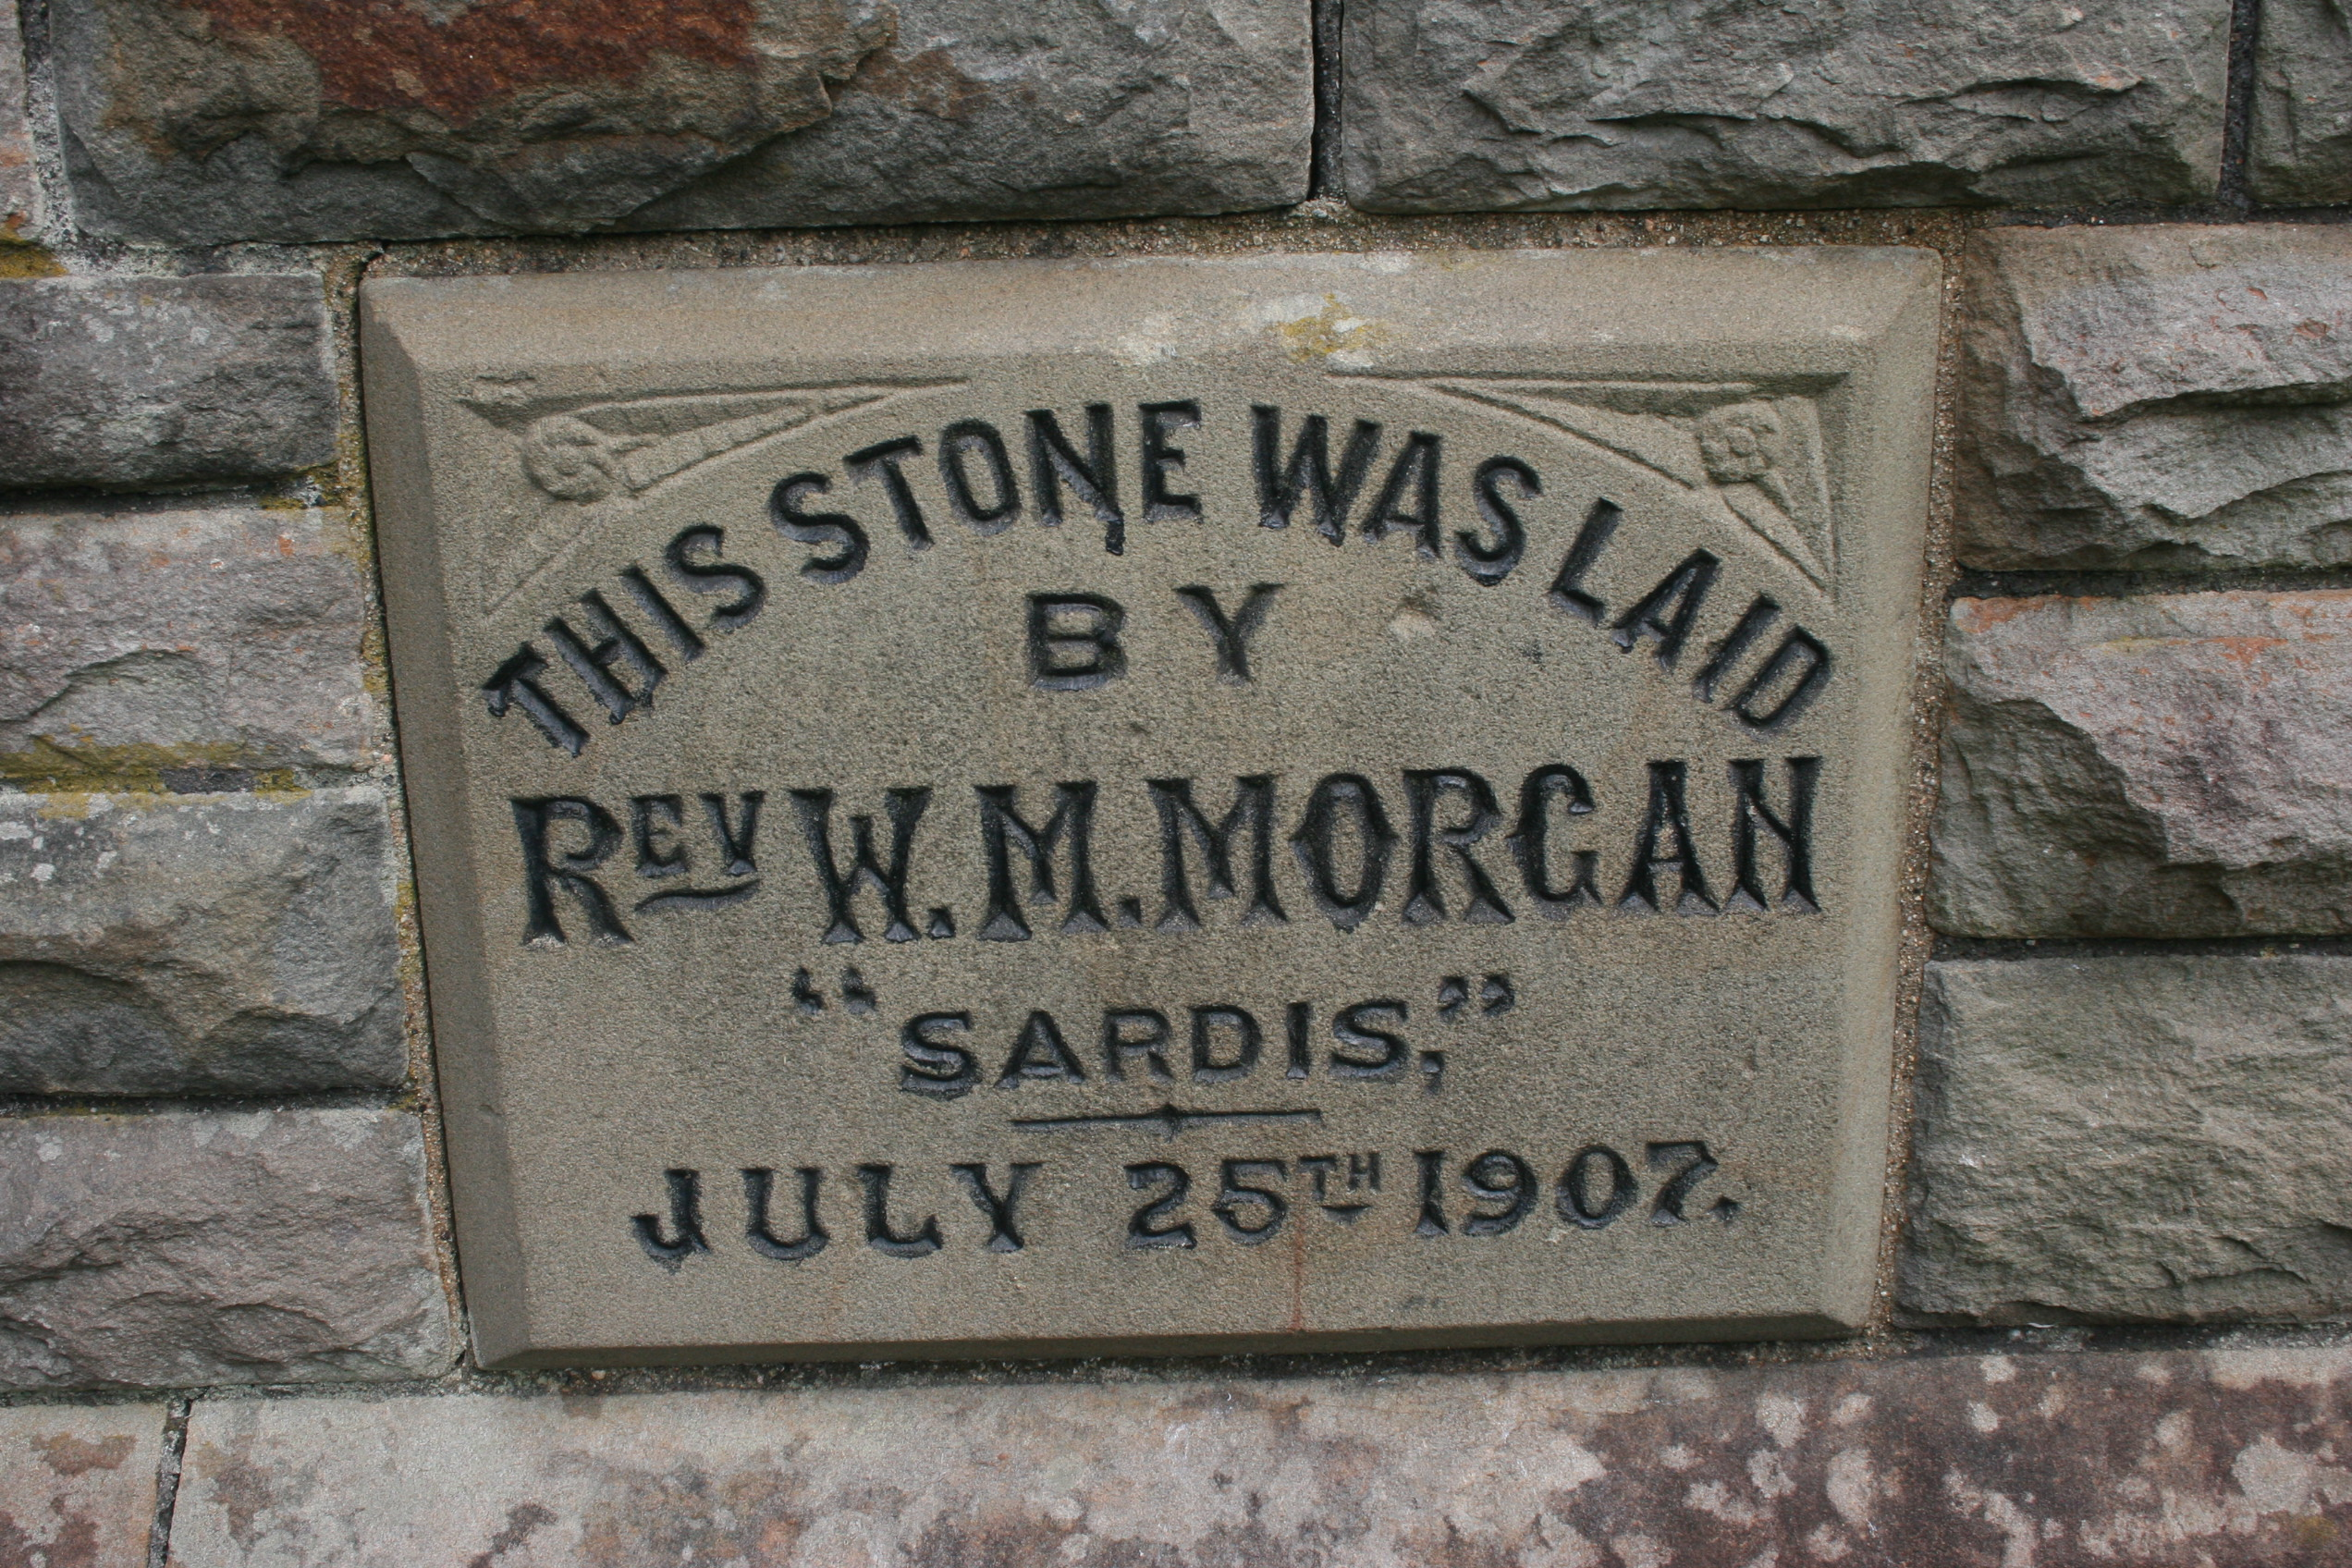 The foundation stone mentioning the Reverend of Sardis